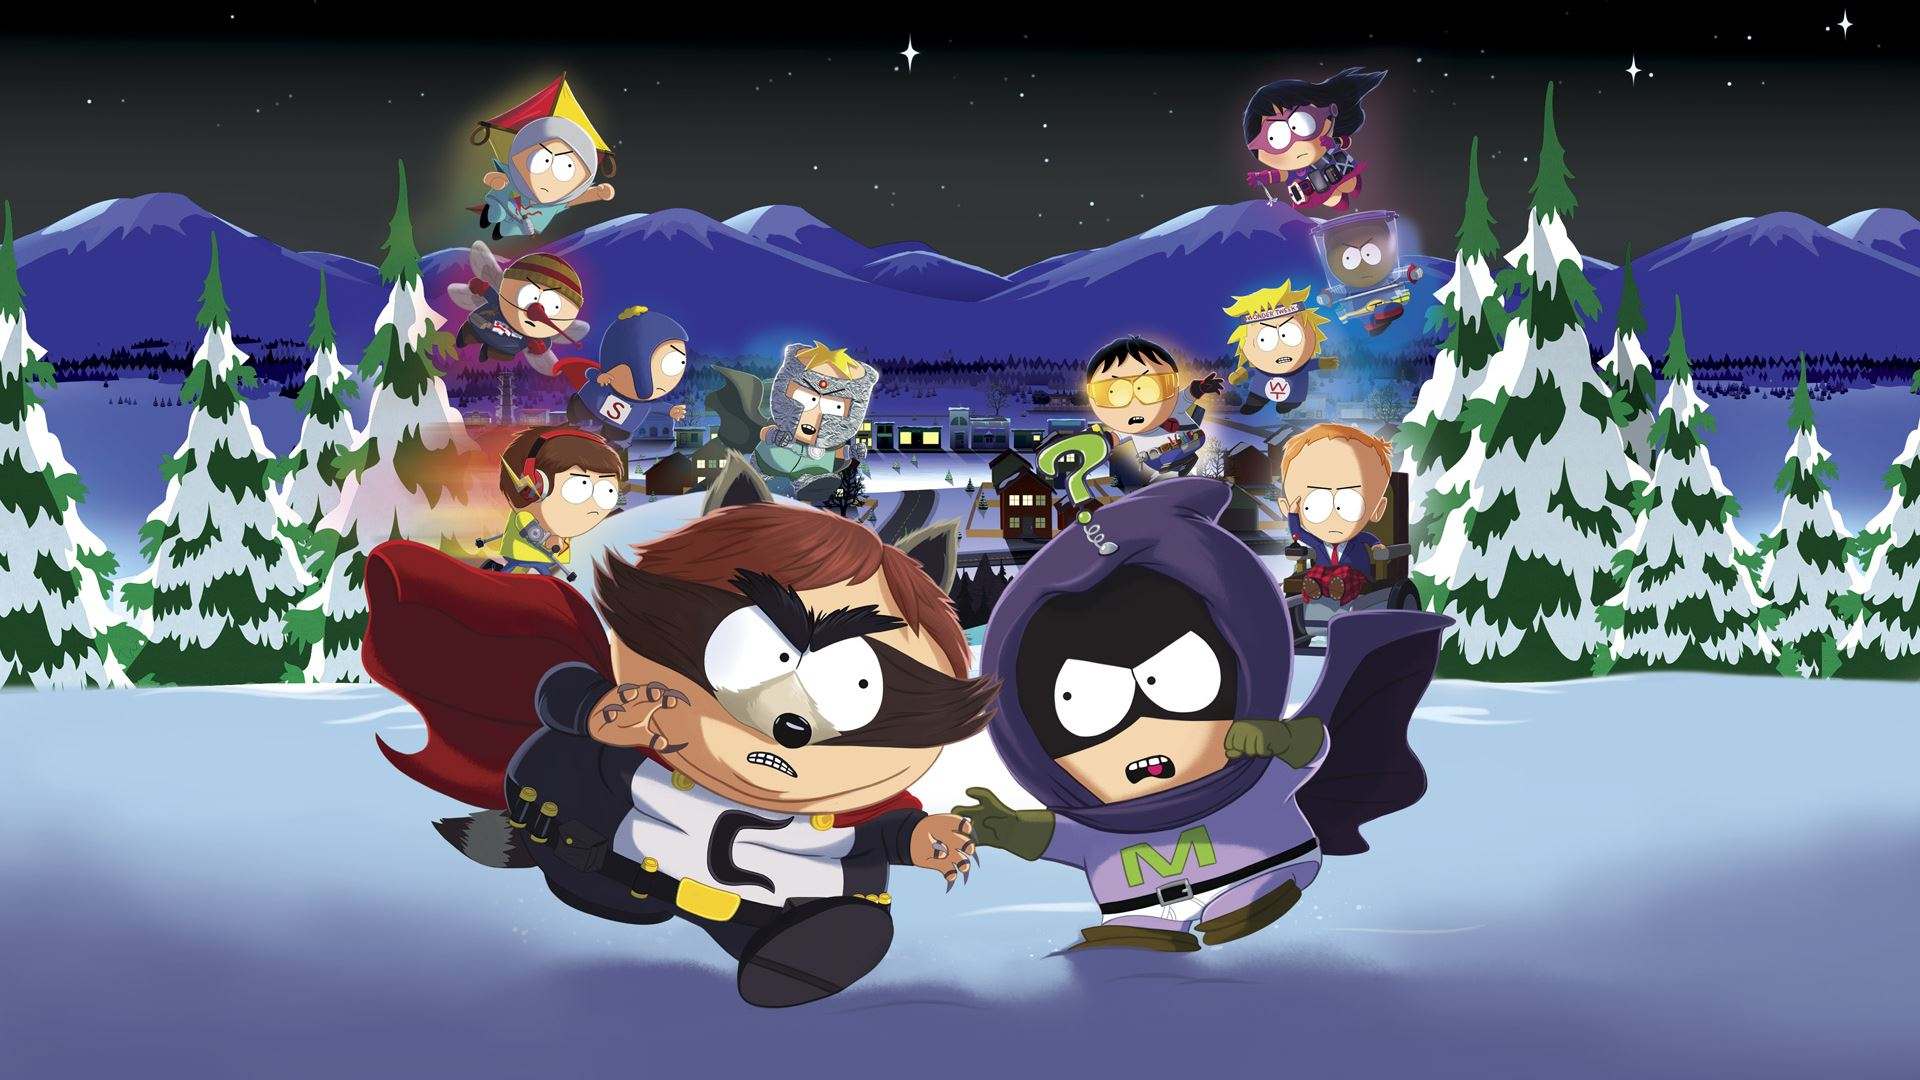 #9. South Park: The Fractured But Whole